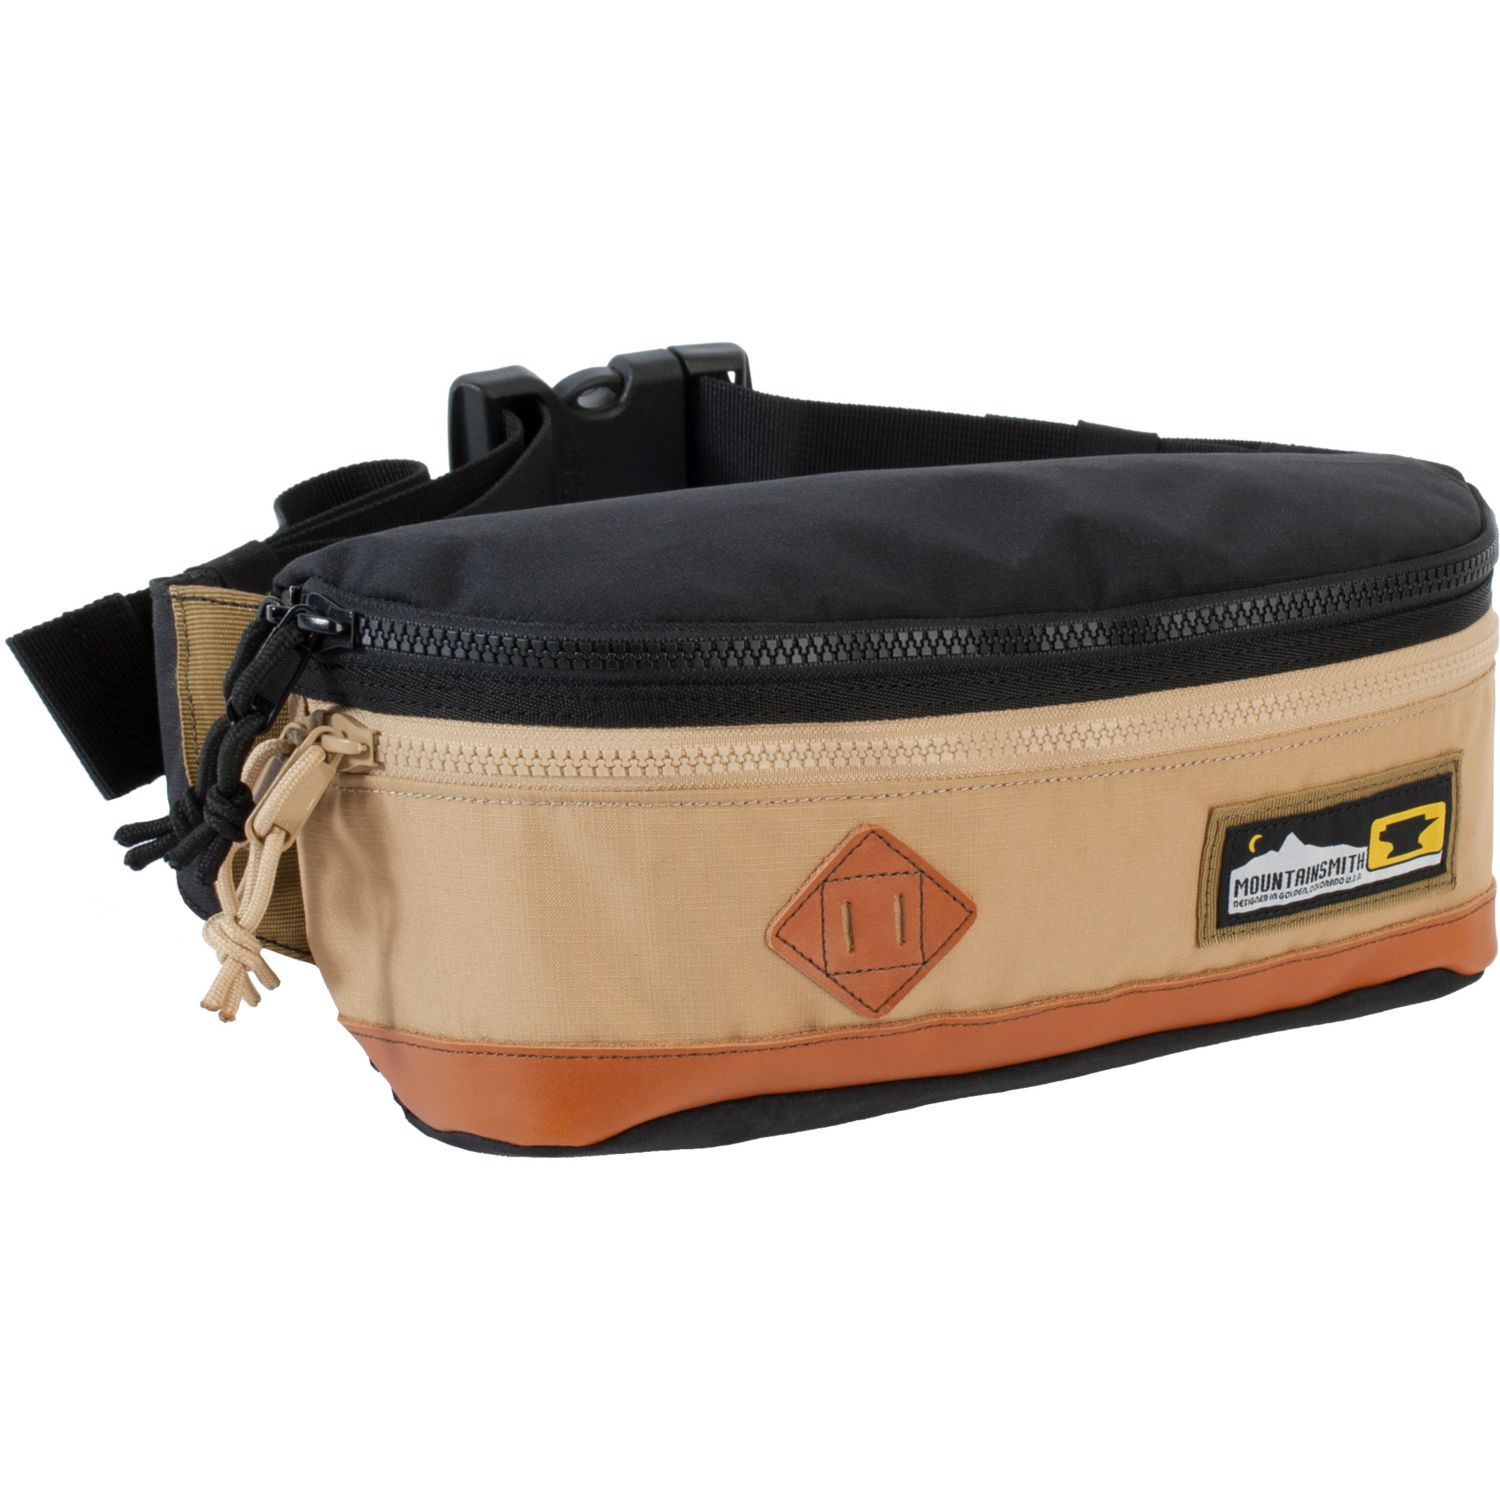 c6d4ce808ffc9 MountainSmith Trippin Fanny Pack